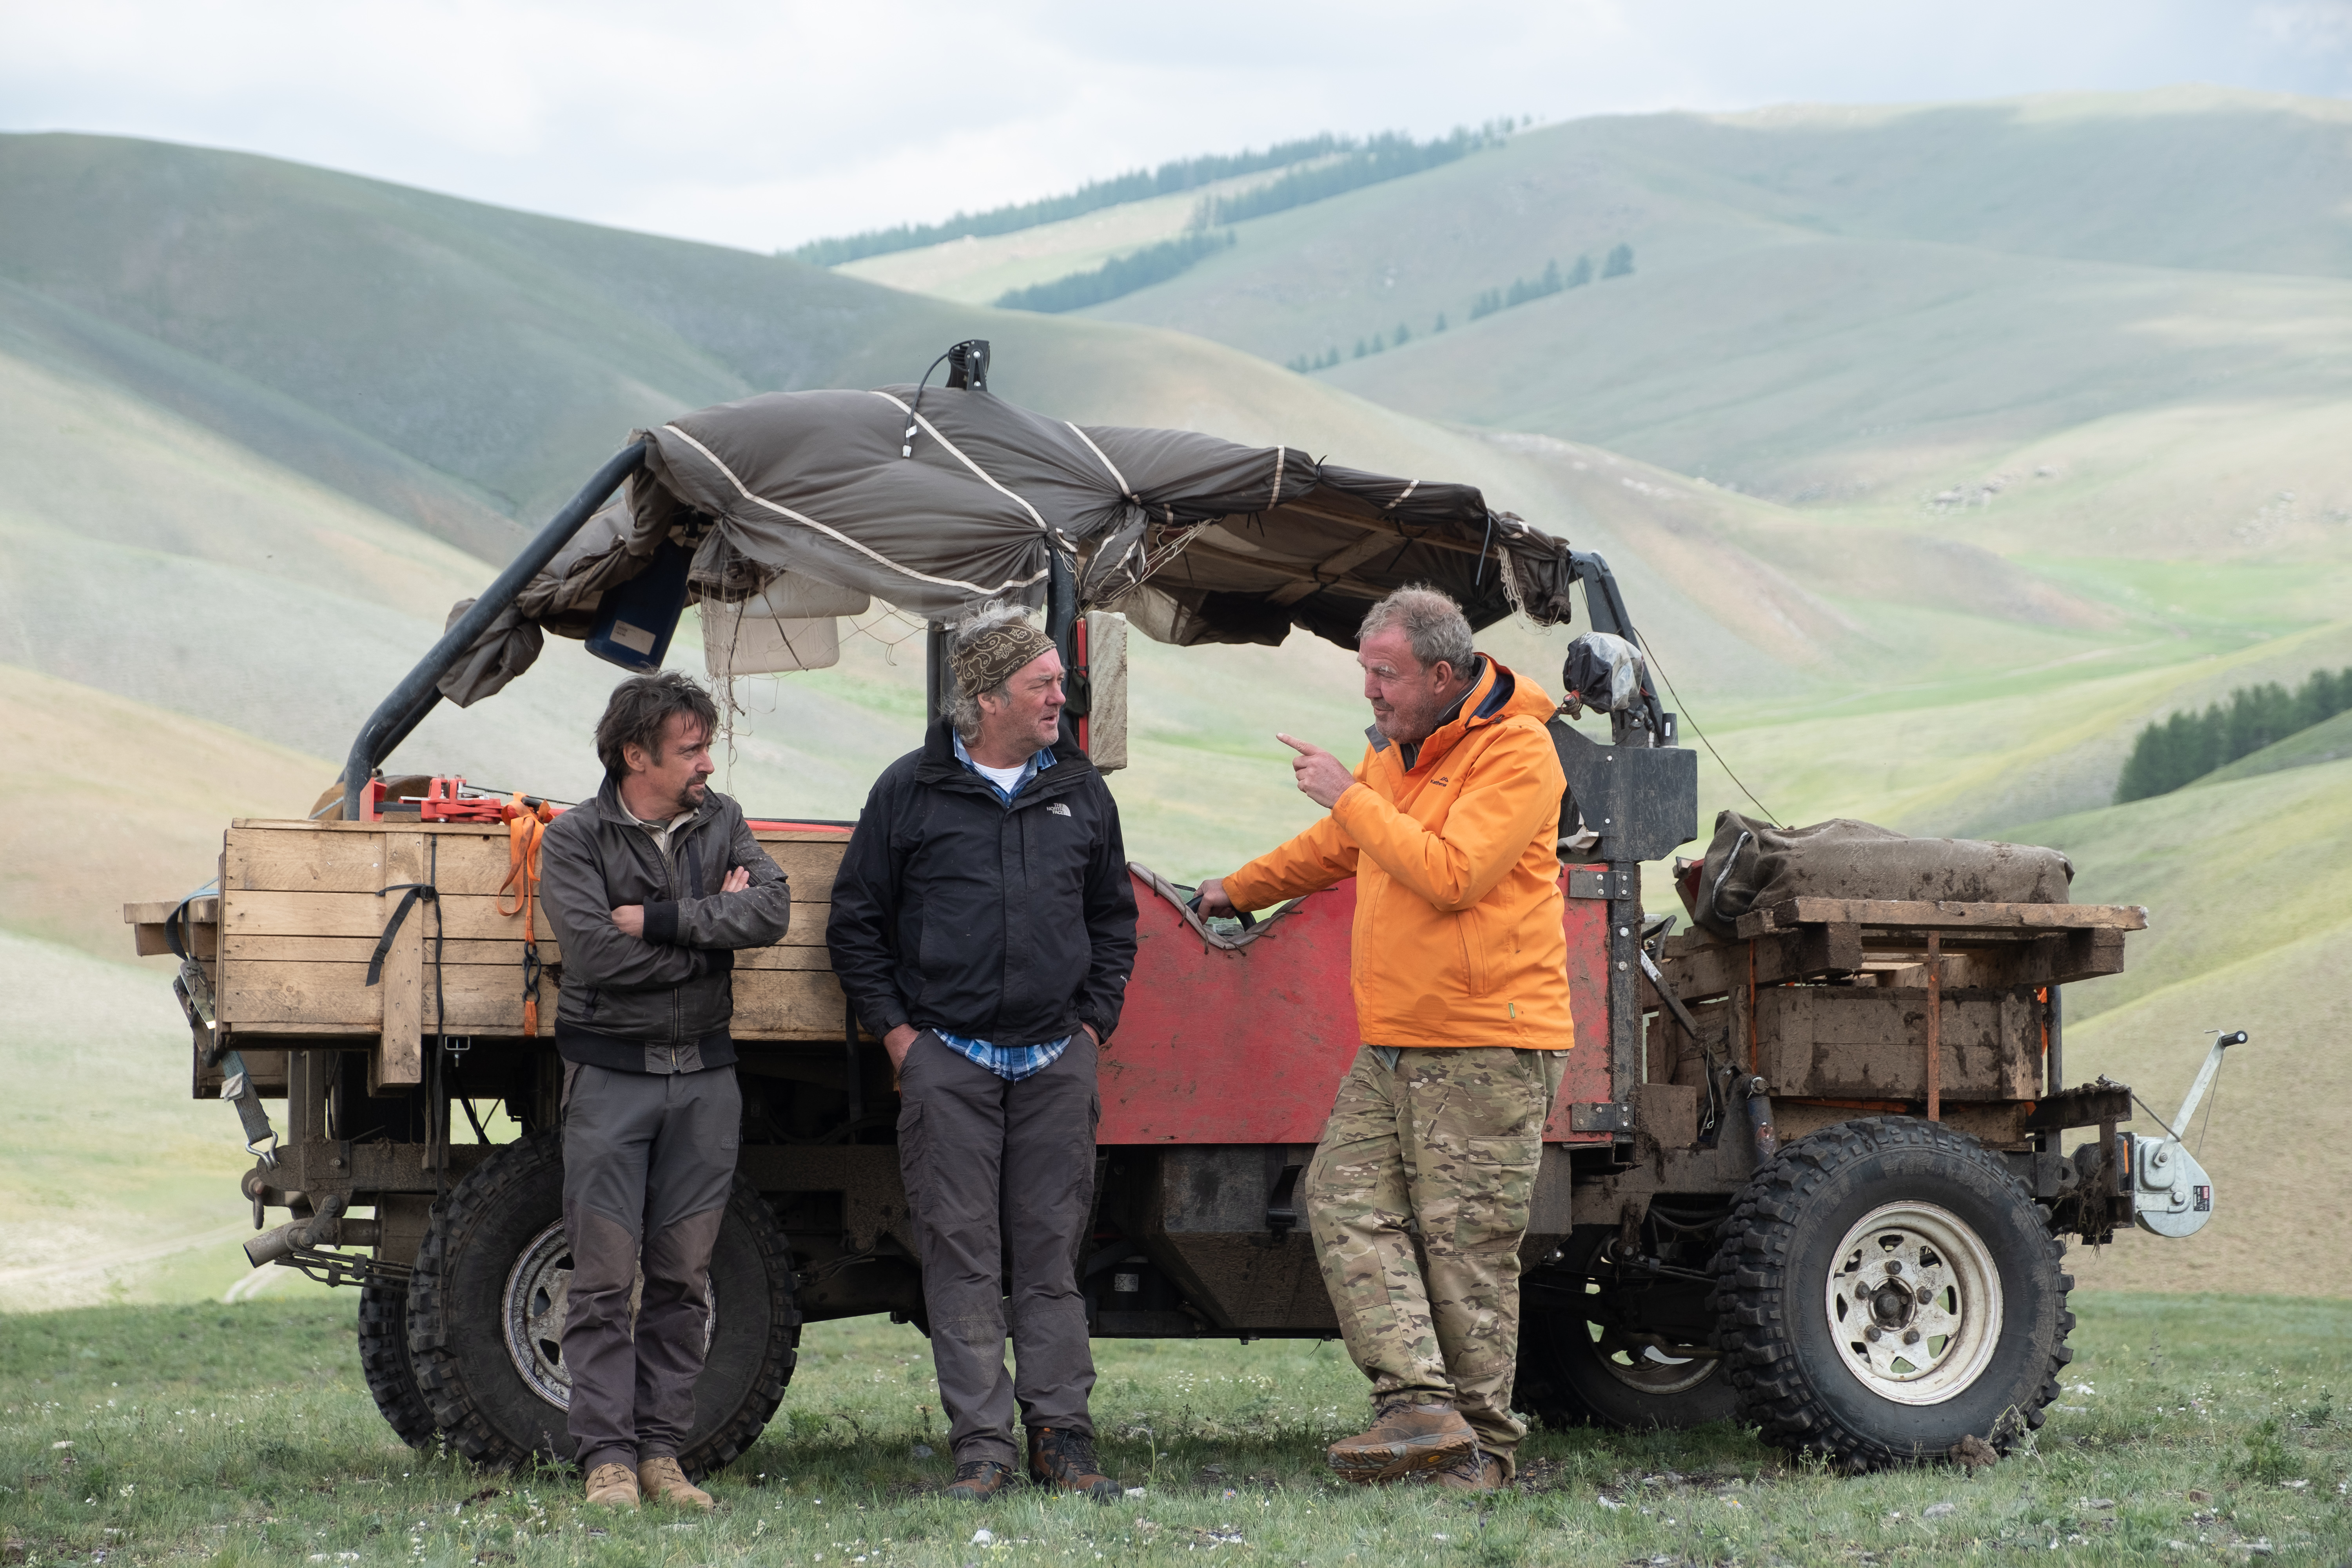 Jeremy Clarkson teases 'profoundly sad' The Grand Tour season 3 finale after Mongolia special